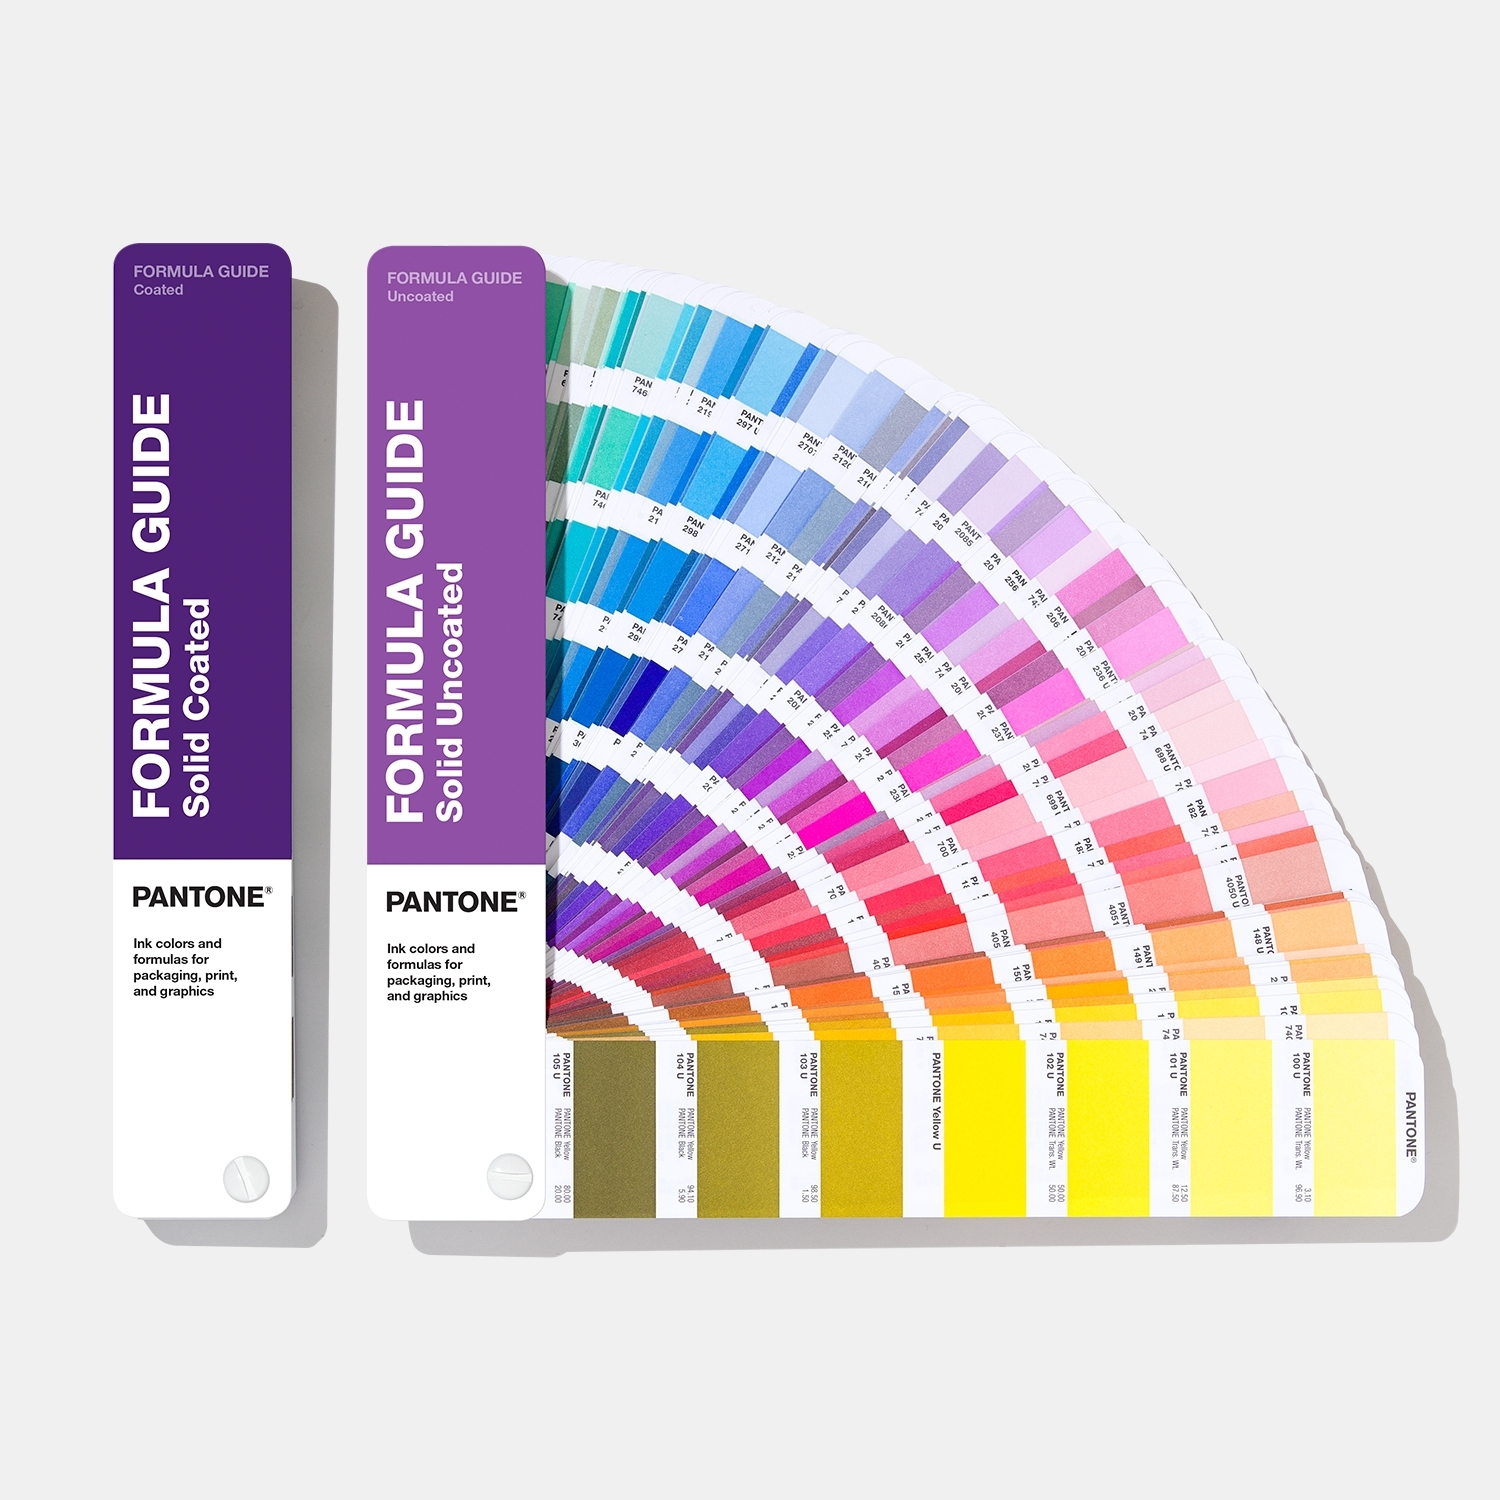 Now with a total of 1,867 solid PANTONE Colors, imagine the creative and communication possibilities!